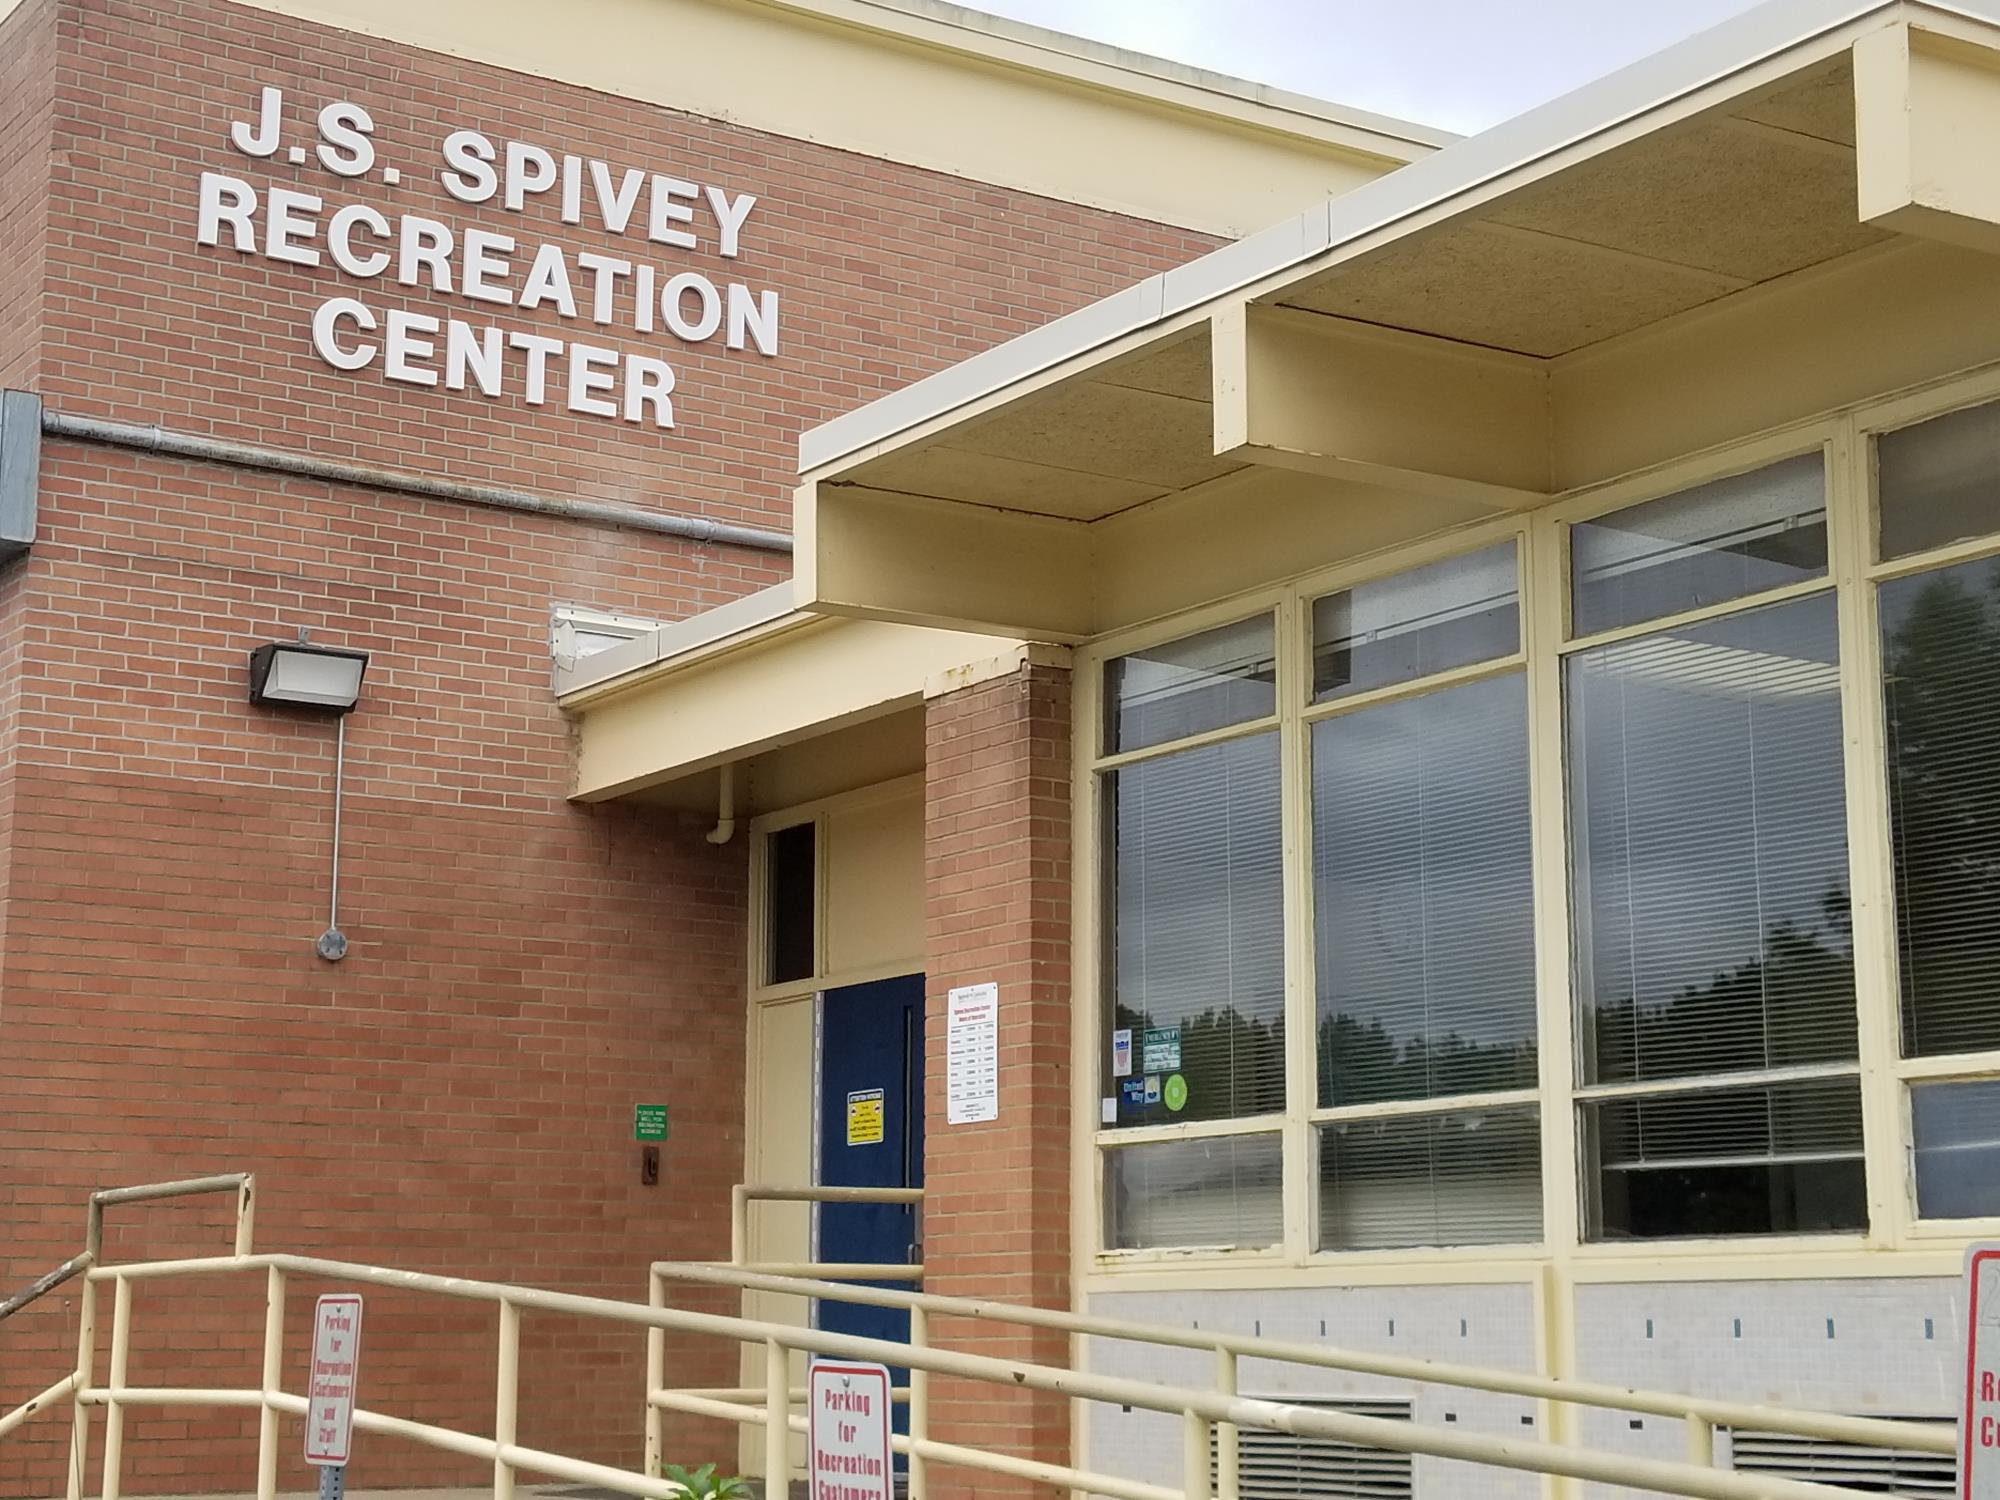 J.S. Spivey Recreation Center | Parks and Recreation